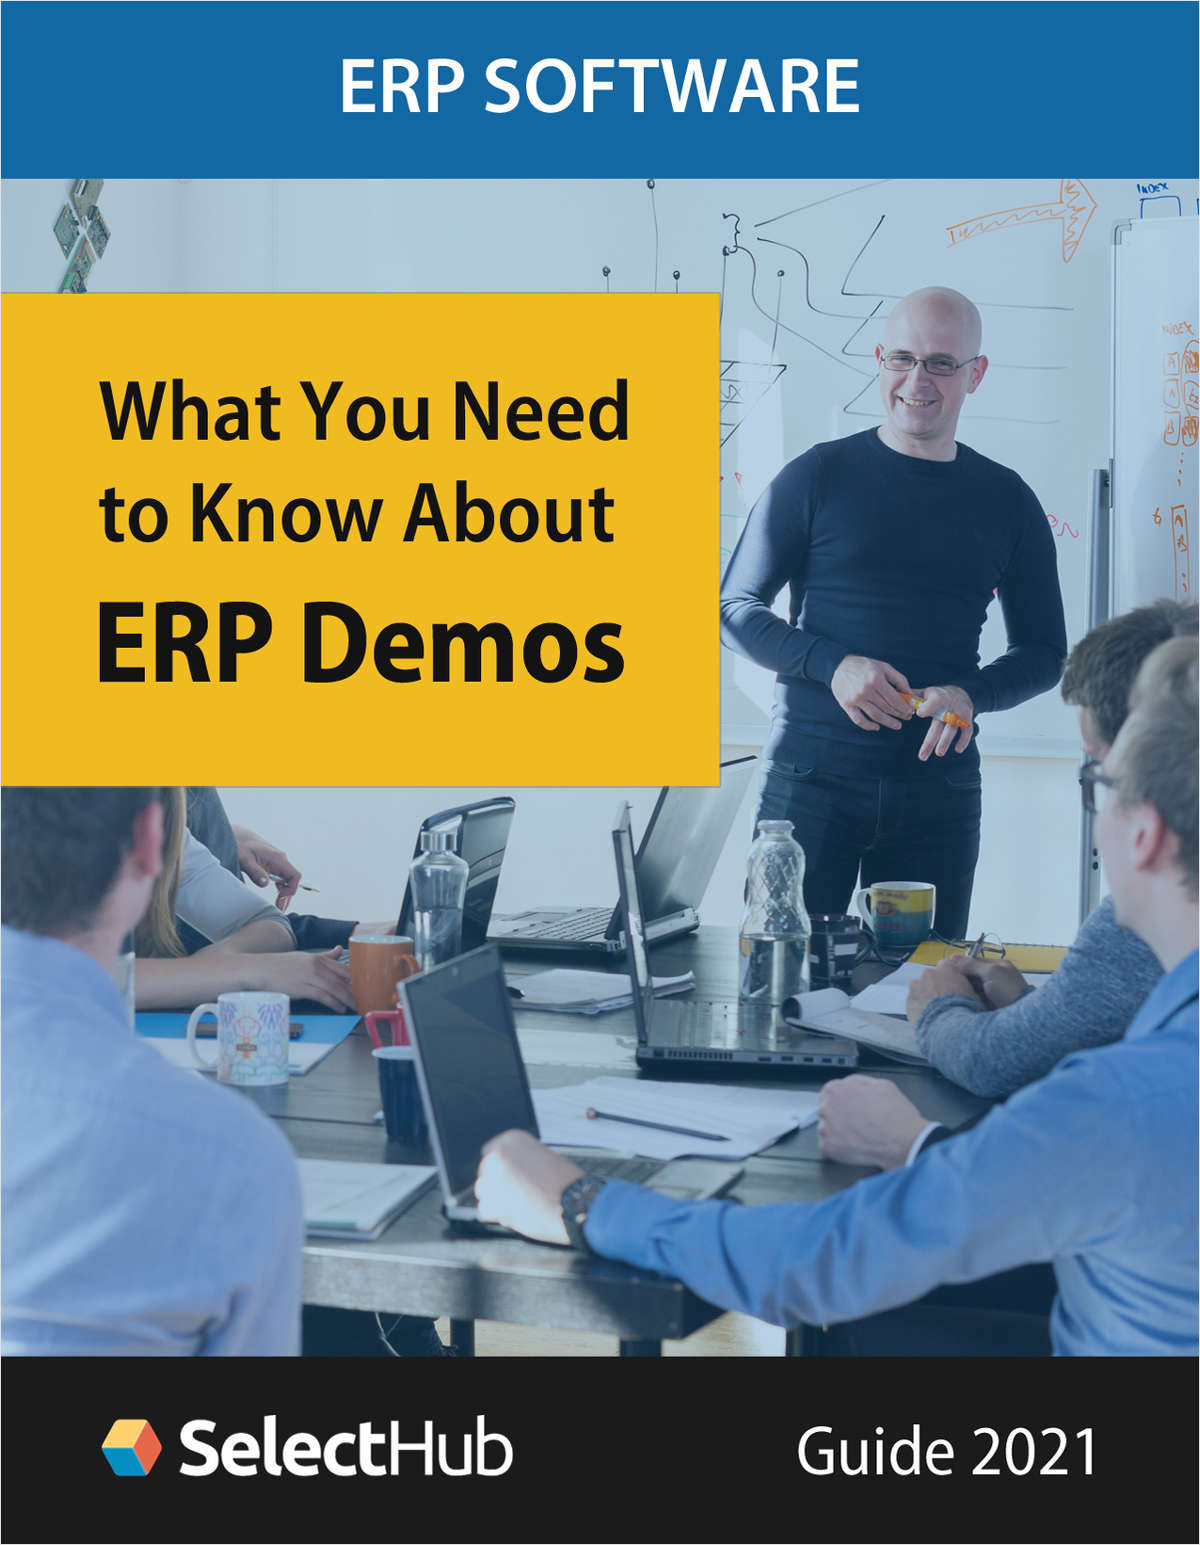 Buying ERP Software? What You Need to Know About ERP Demos